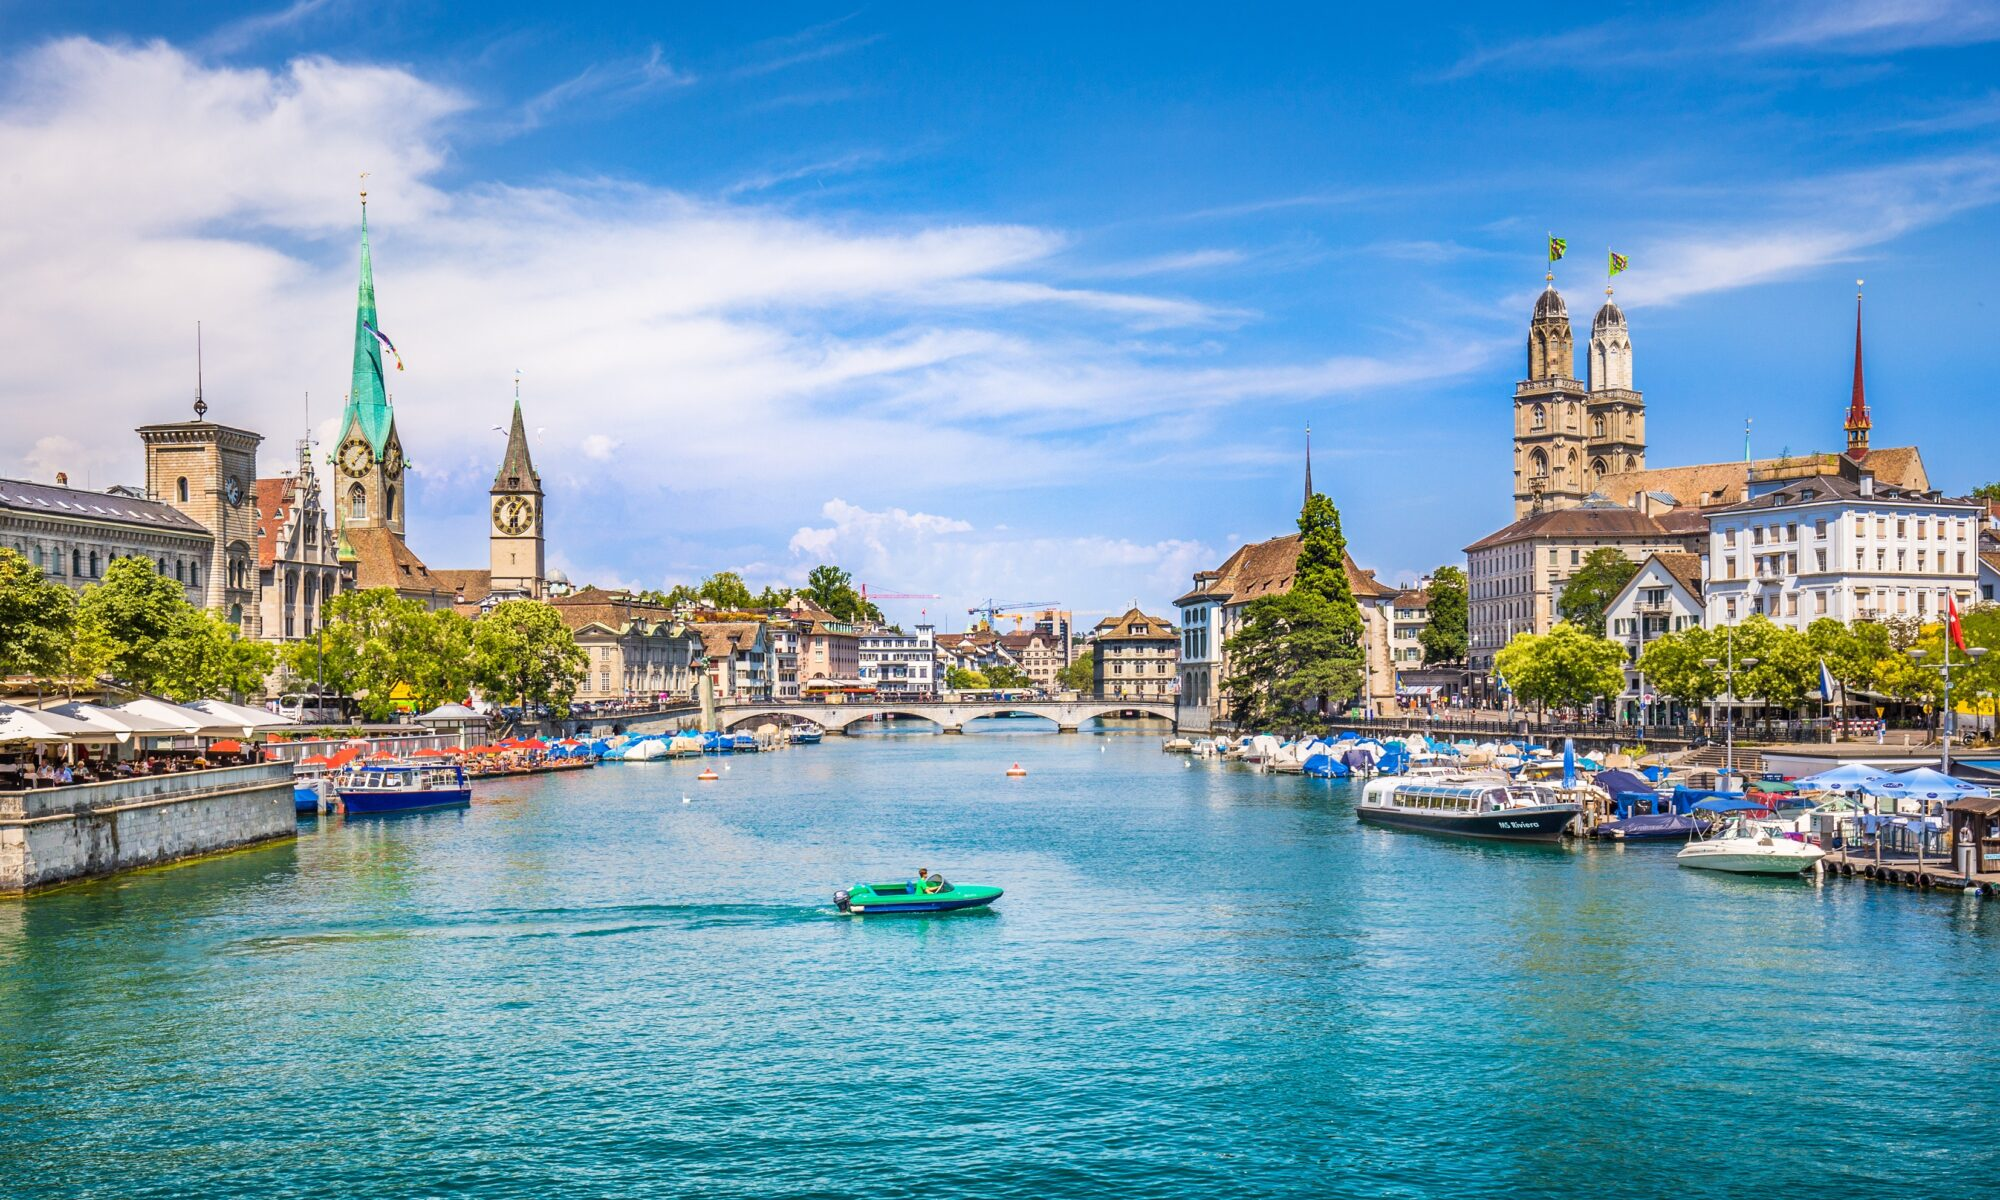 Hotels in Zurich Switzerland